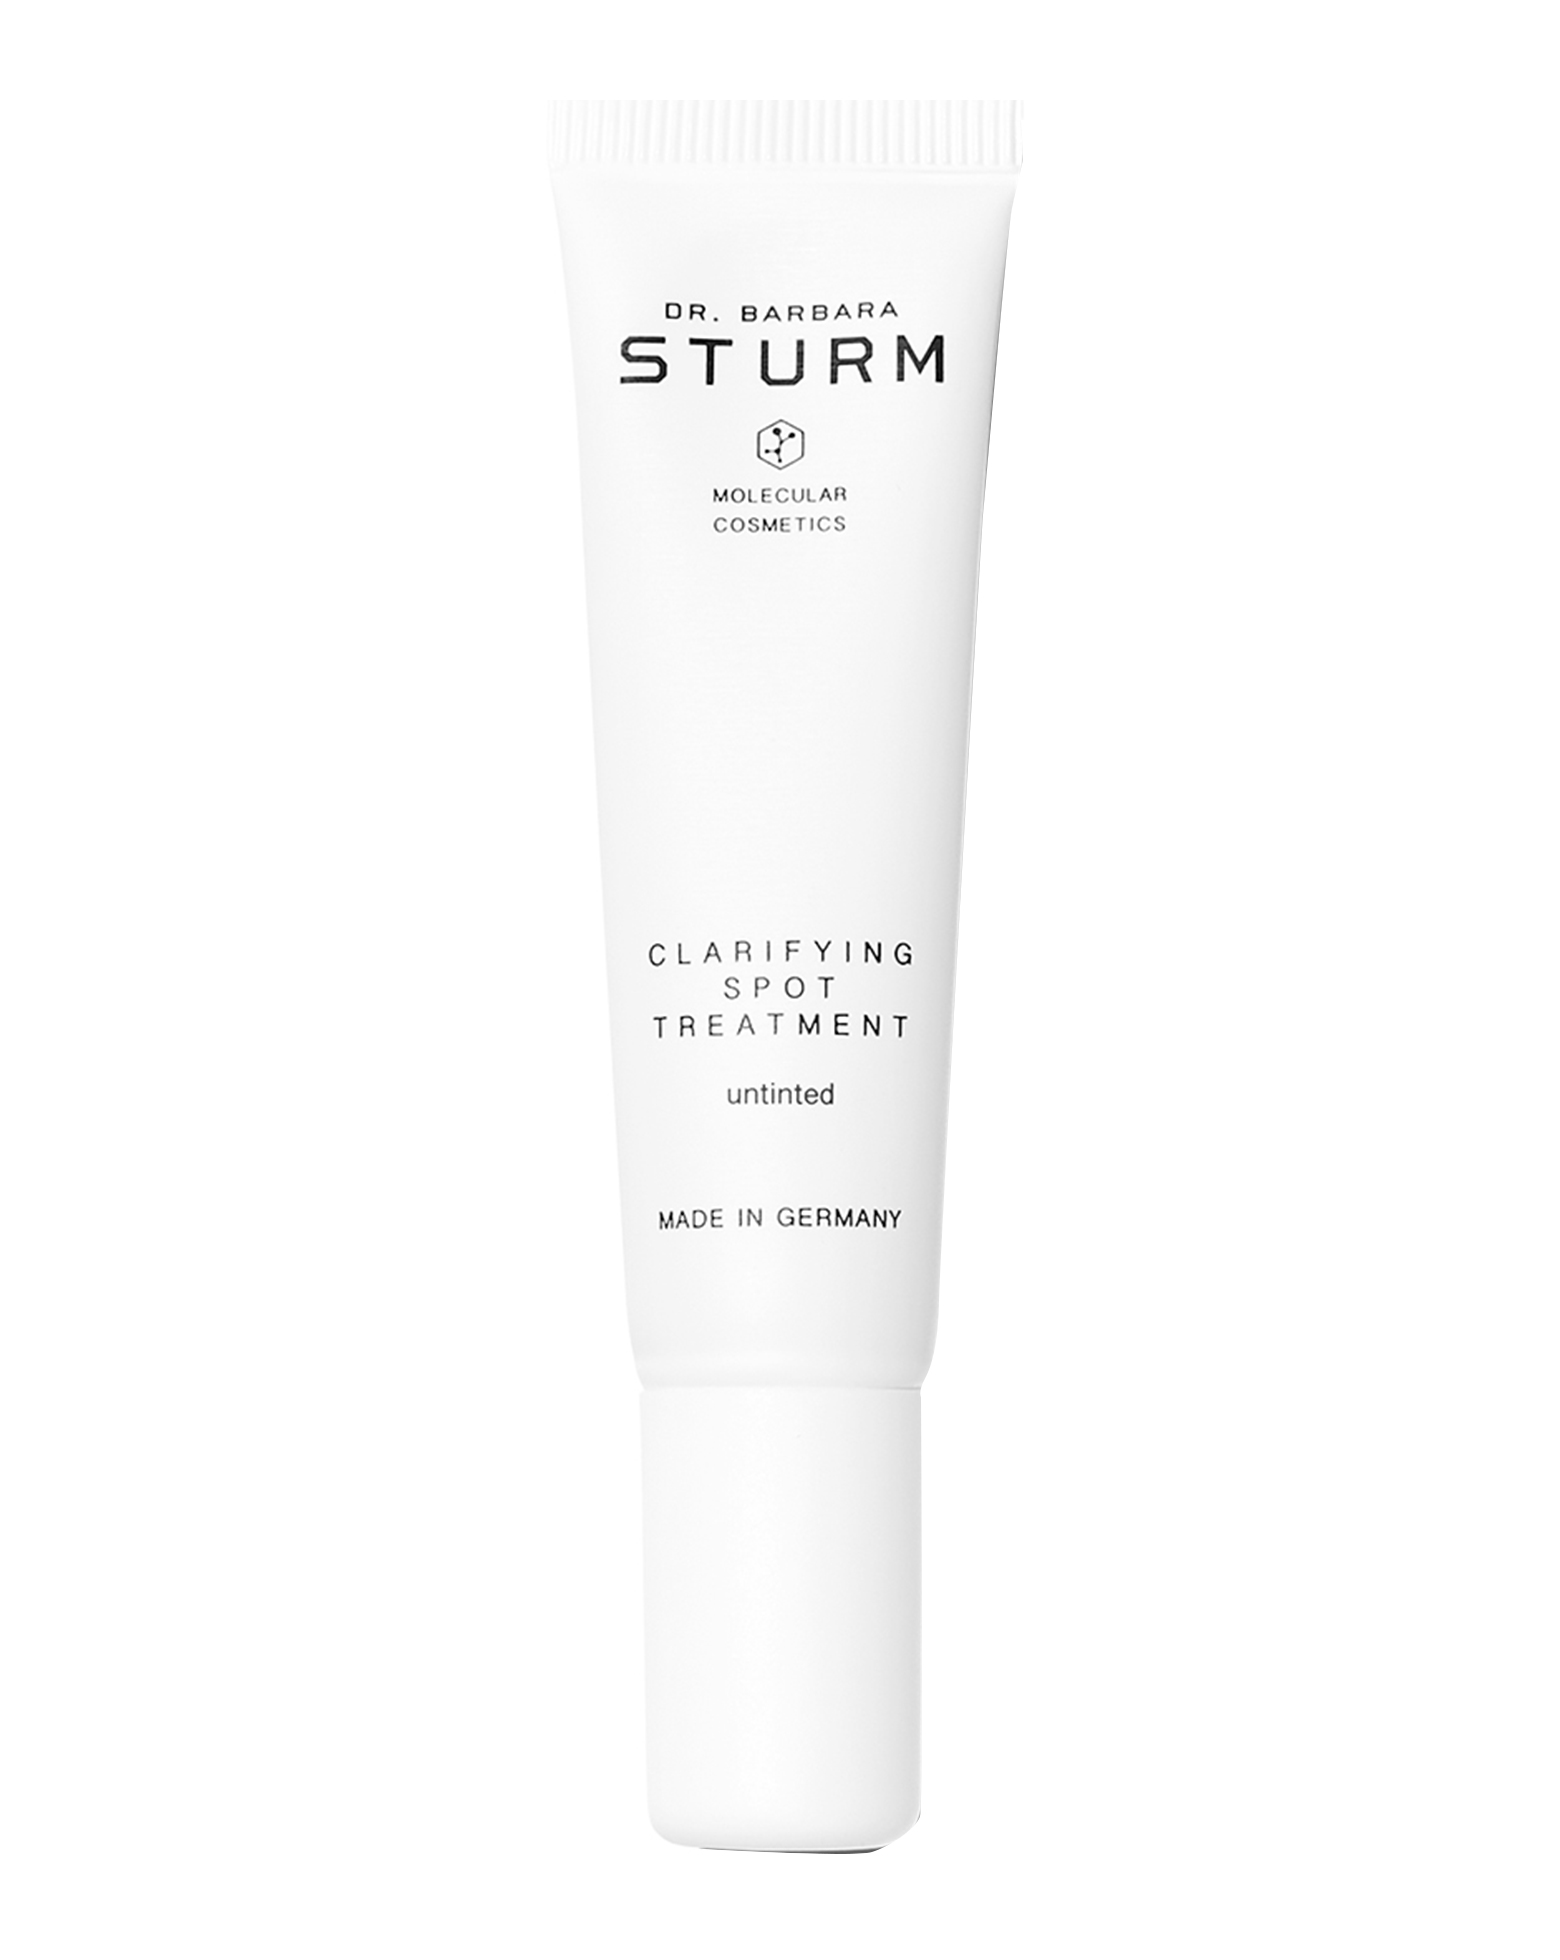 Dr. Barbara Sturm Clarifying Spot Treatment Untinted